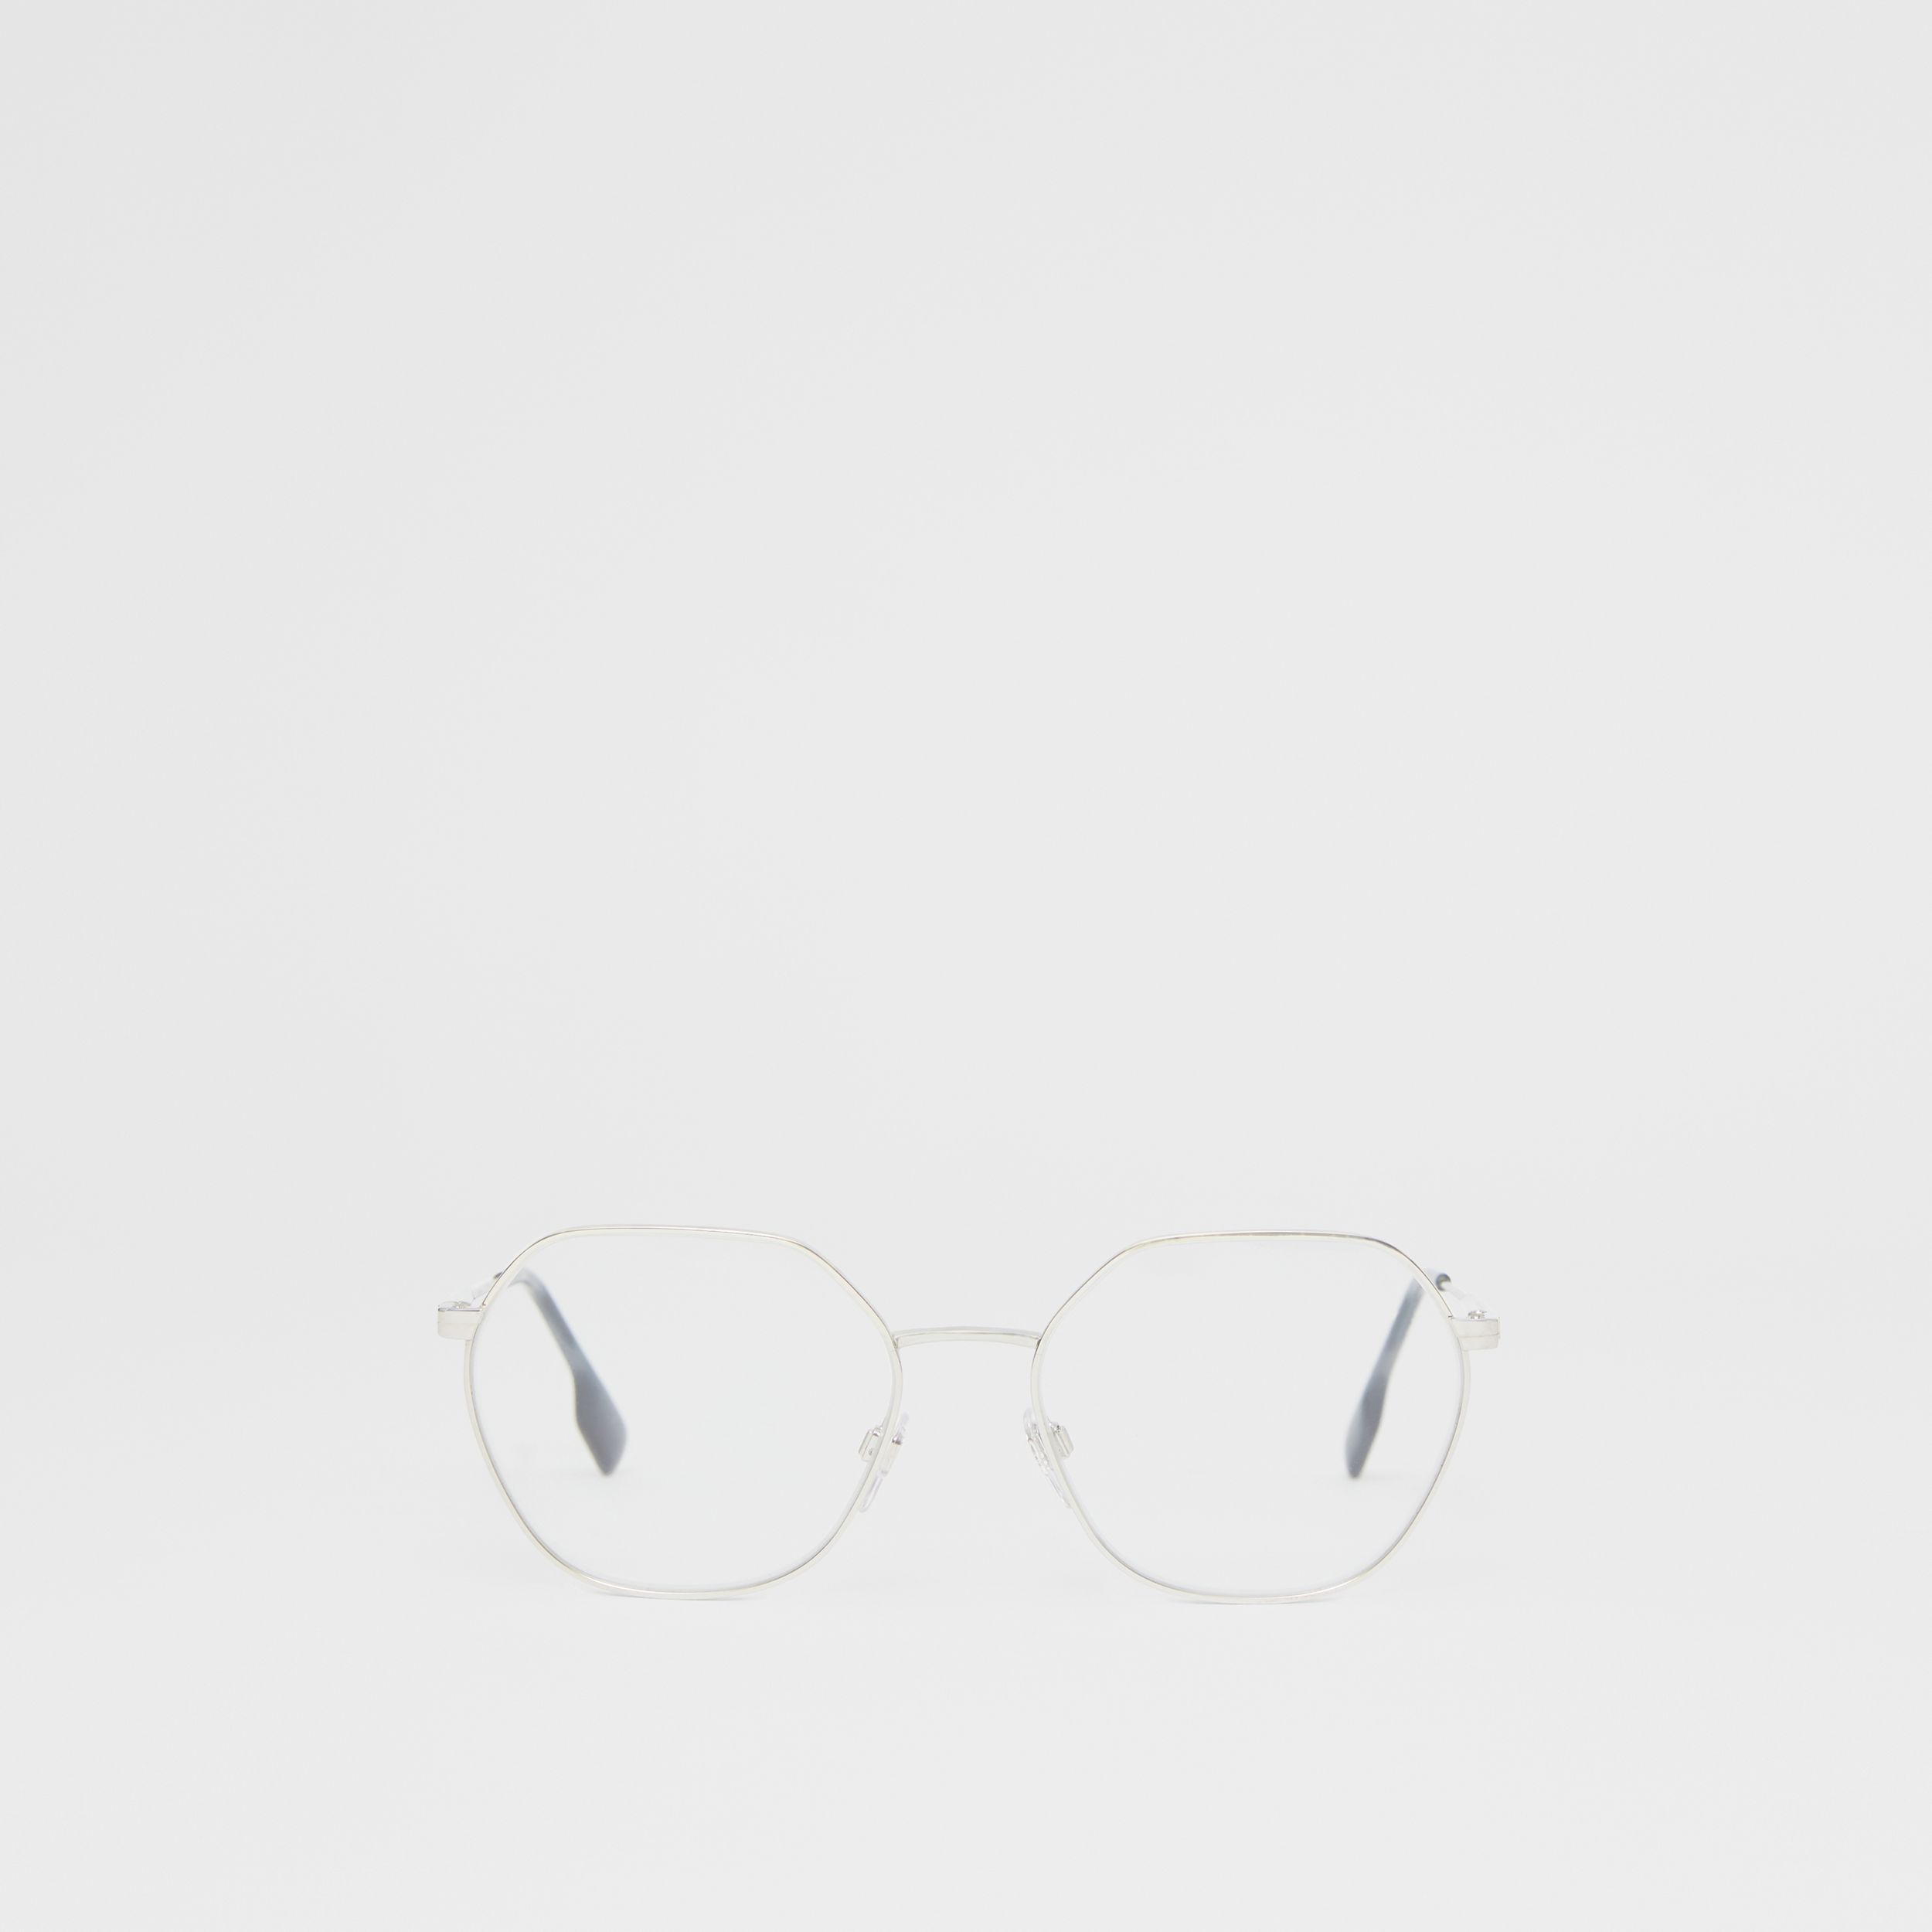 Geometric Optical Frames in Grey Tortoiseshell - Women | Burberry - 1